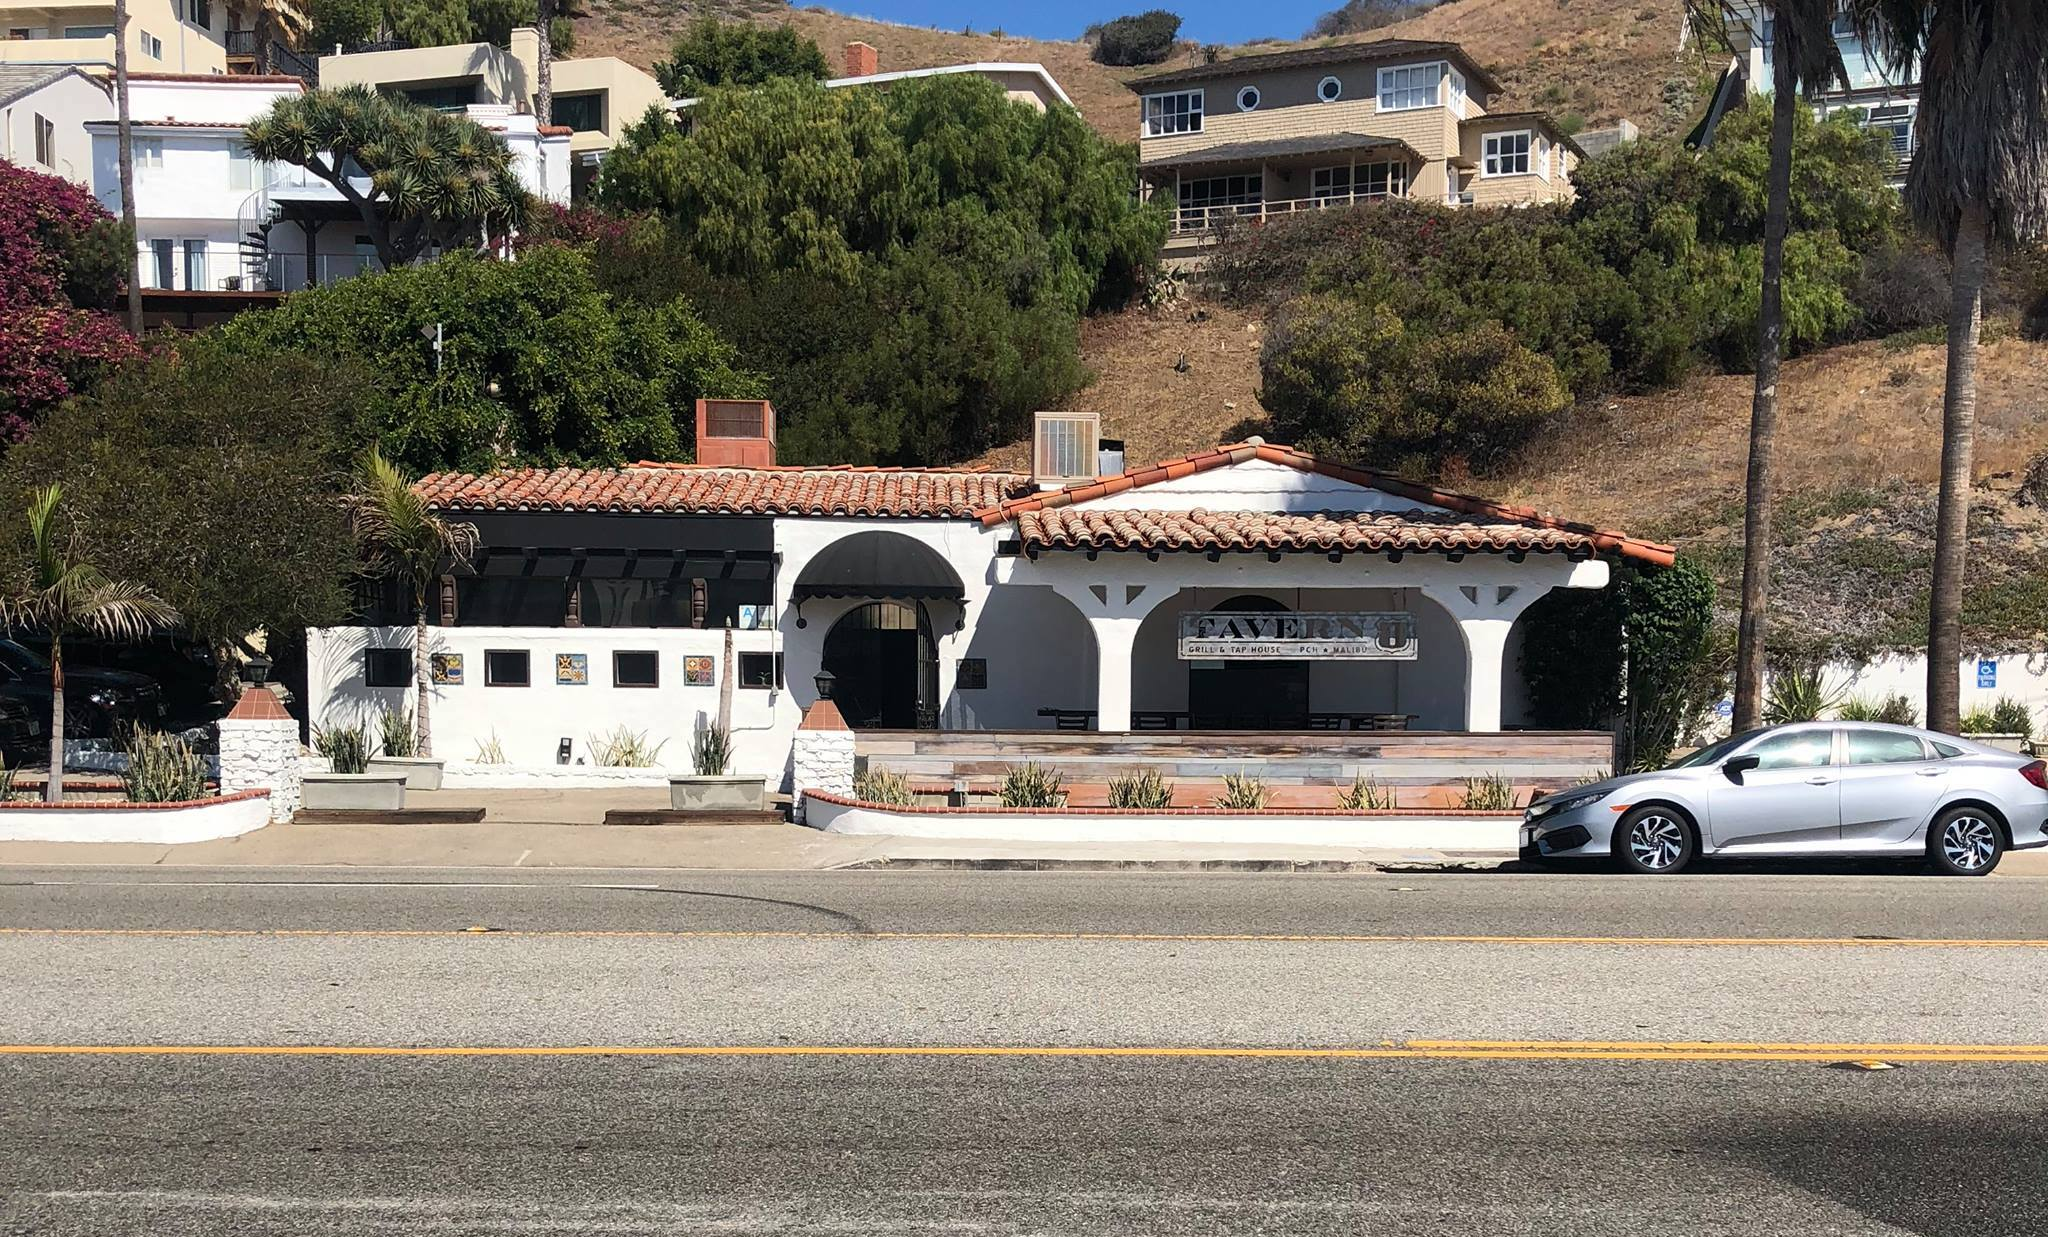 The Spanish-style restaurant, sitting along the road, is white with a green hillside in the background.